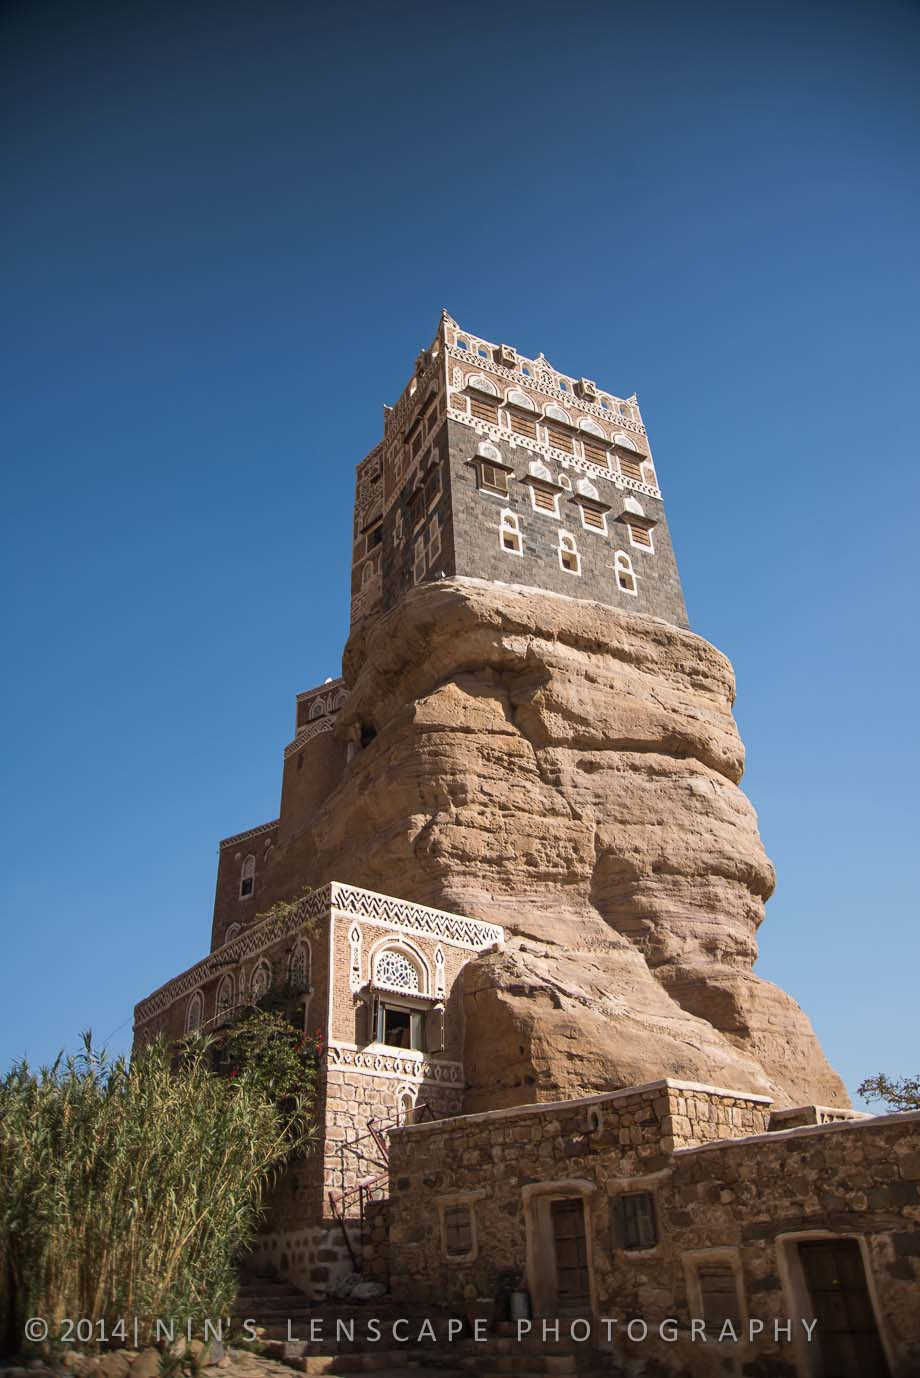 The Rock Palace, approximately 1 and half hour from Sanaa